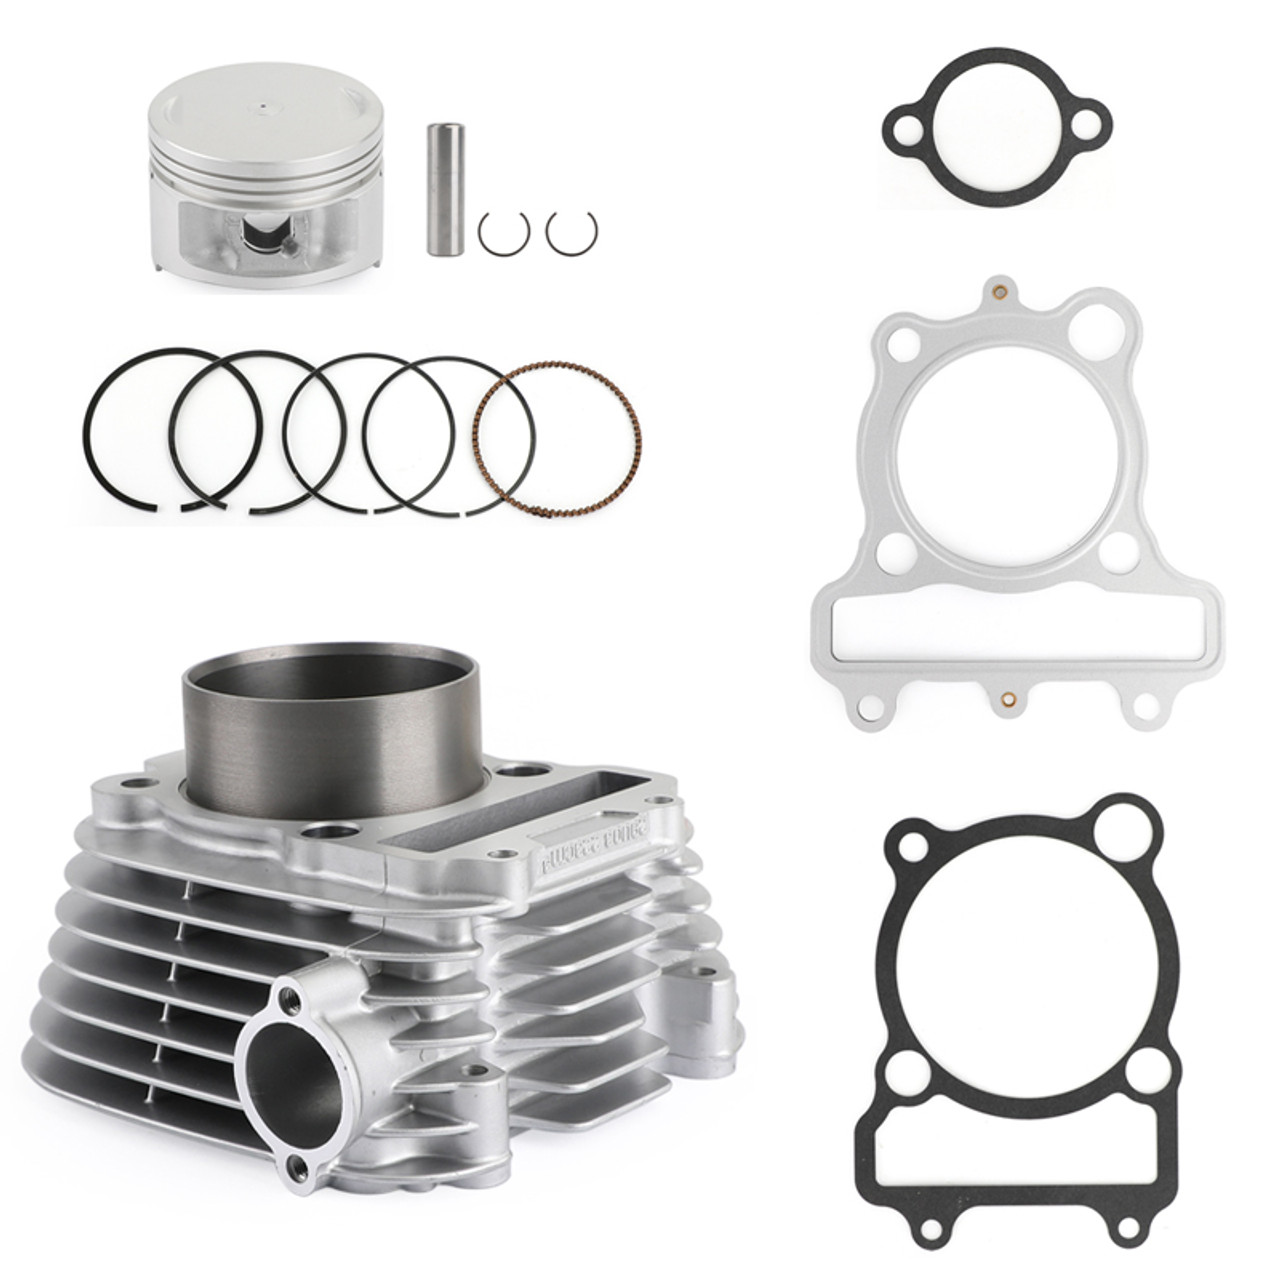 Cylinder Piston Rings Top End Kit Set Fit for Yamaha XT225 Serow 92-20 TTR225 99-04 TTR230 05-16